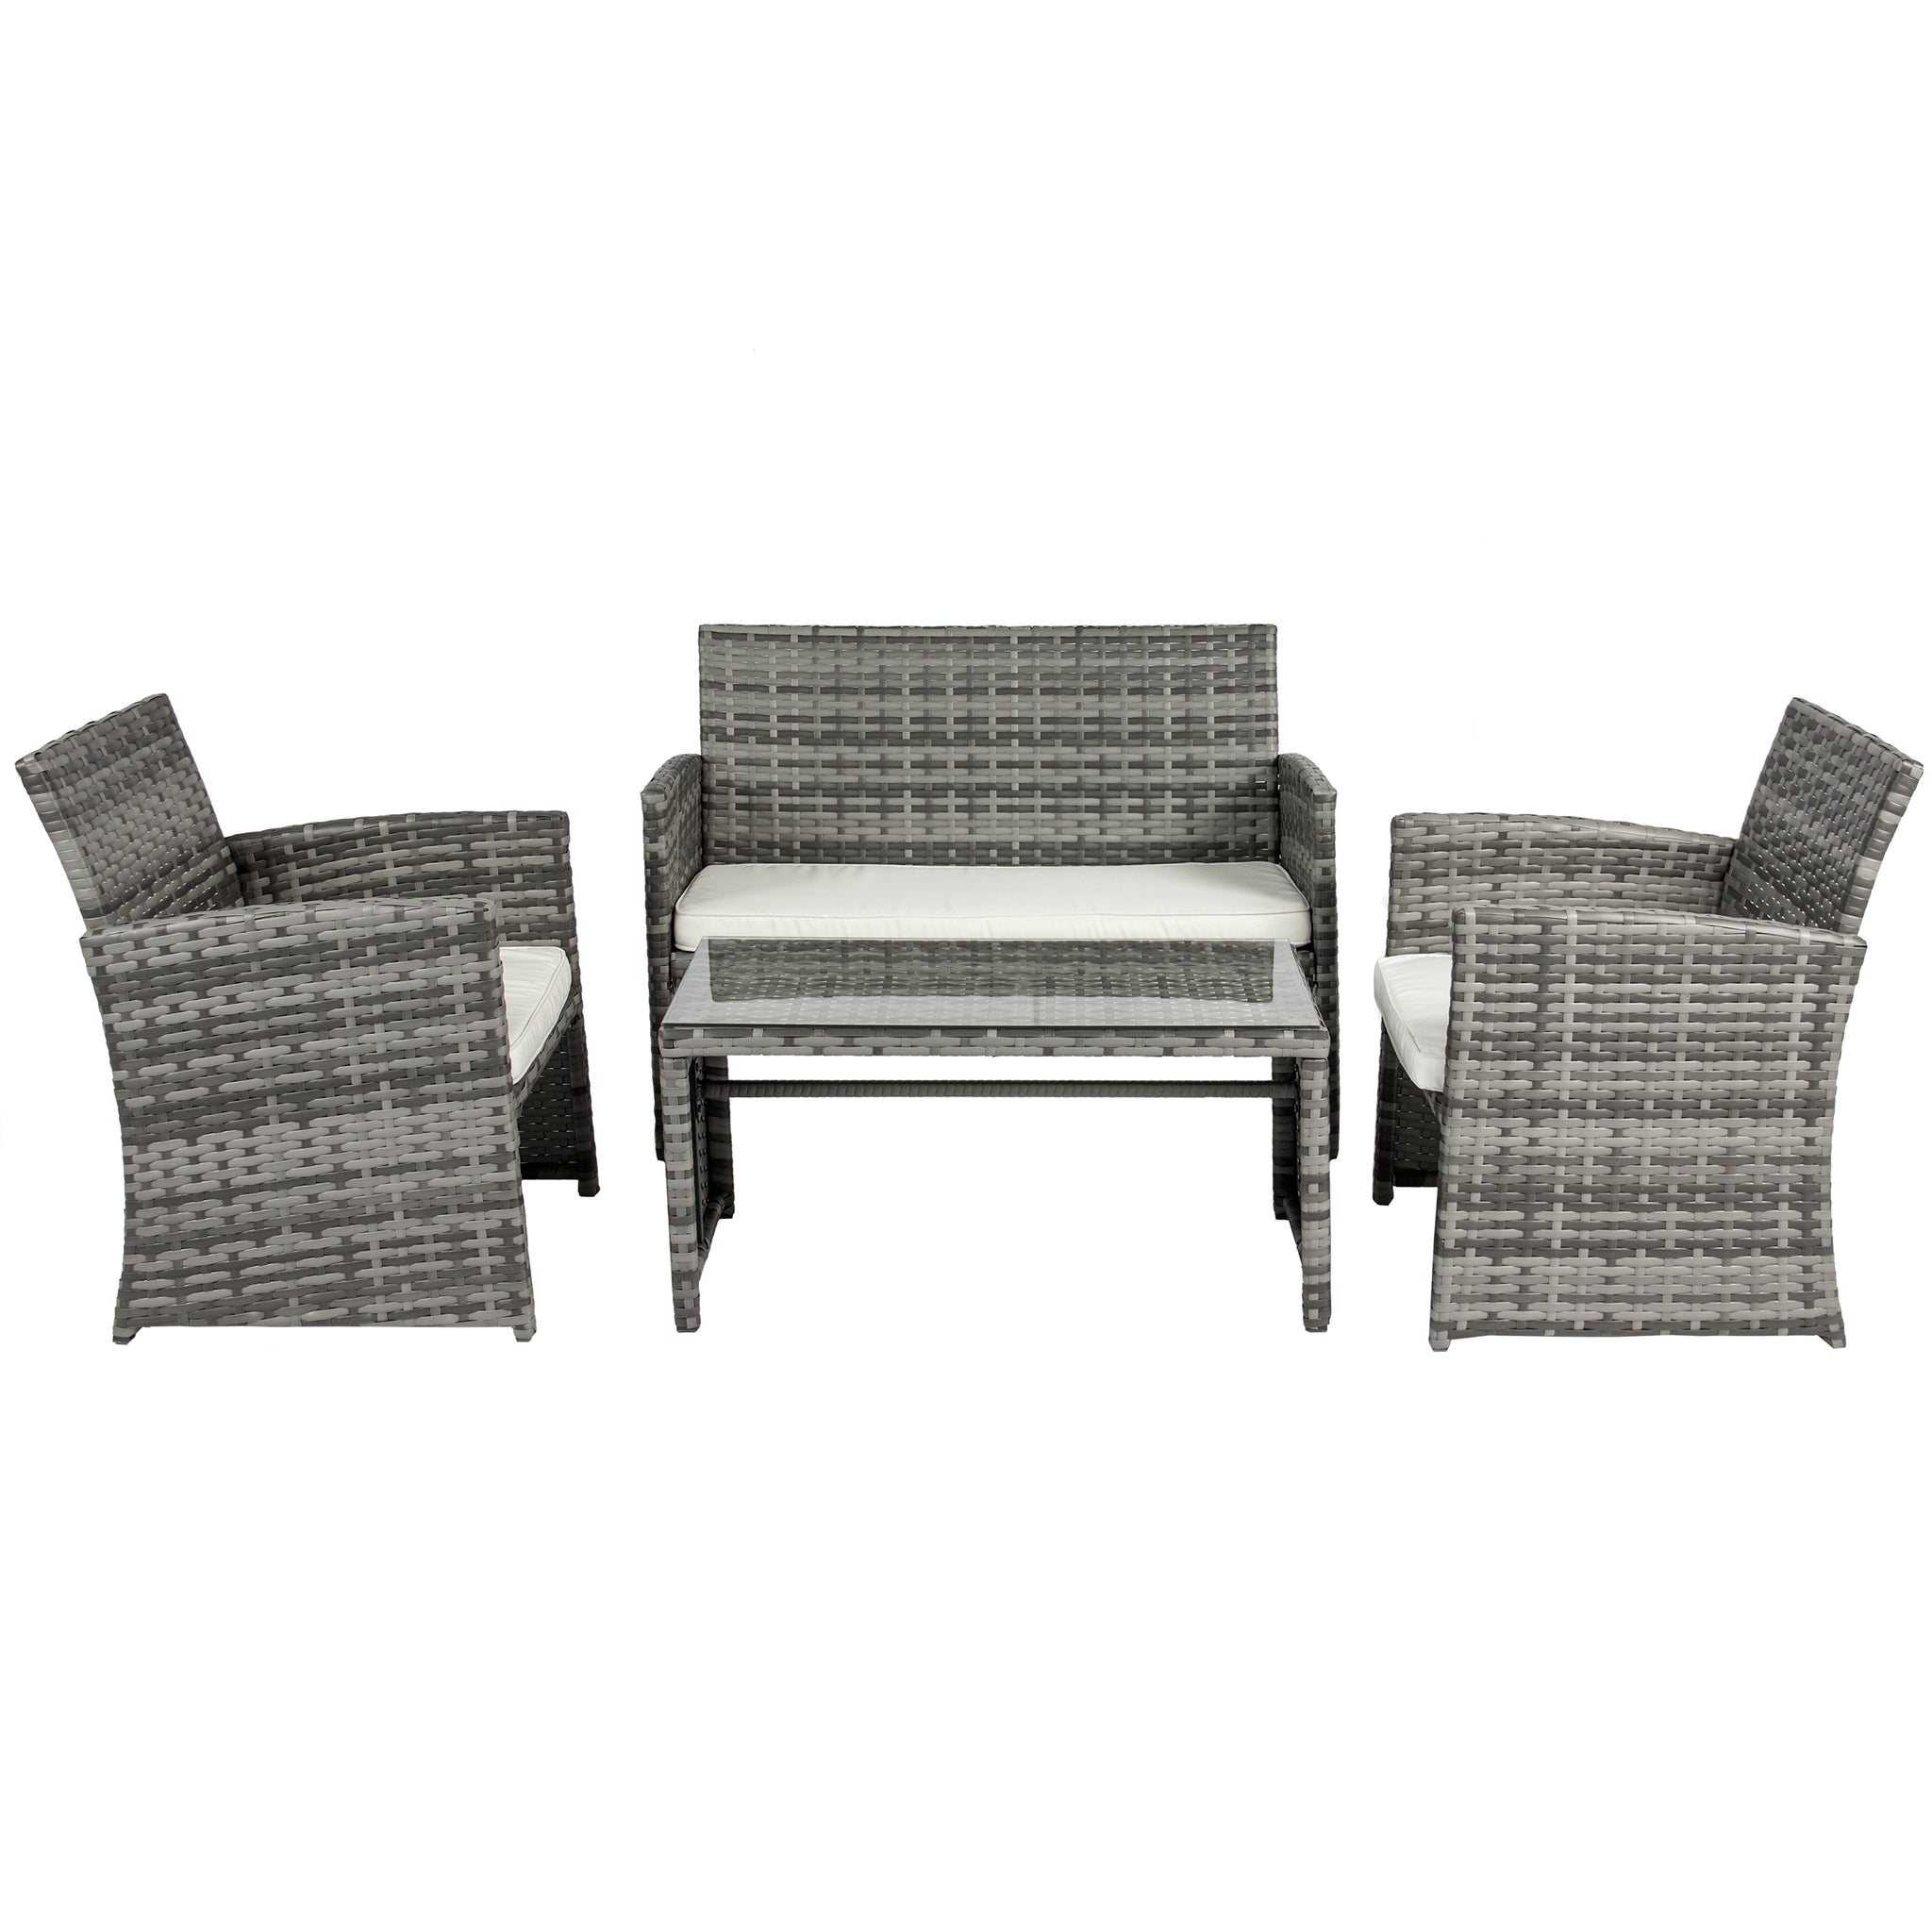 4 piece wicker sofa set gray best choice products for Outdoor furniture 4 piece